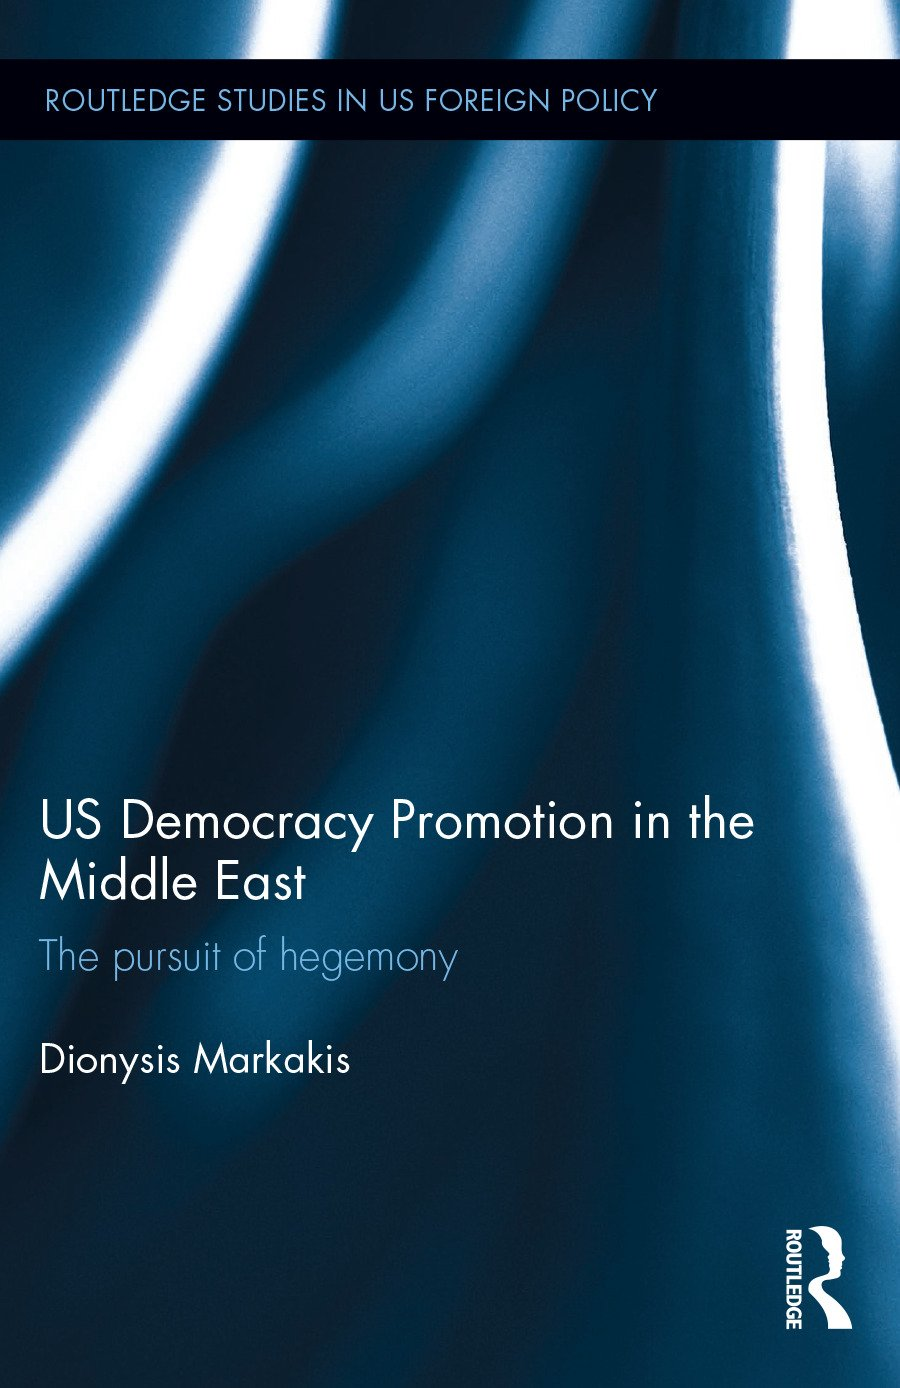 US Democracy Promotion in the Middle East: The Pursuit of Hegemony book cover